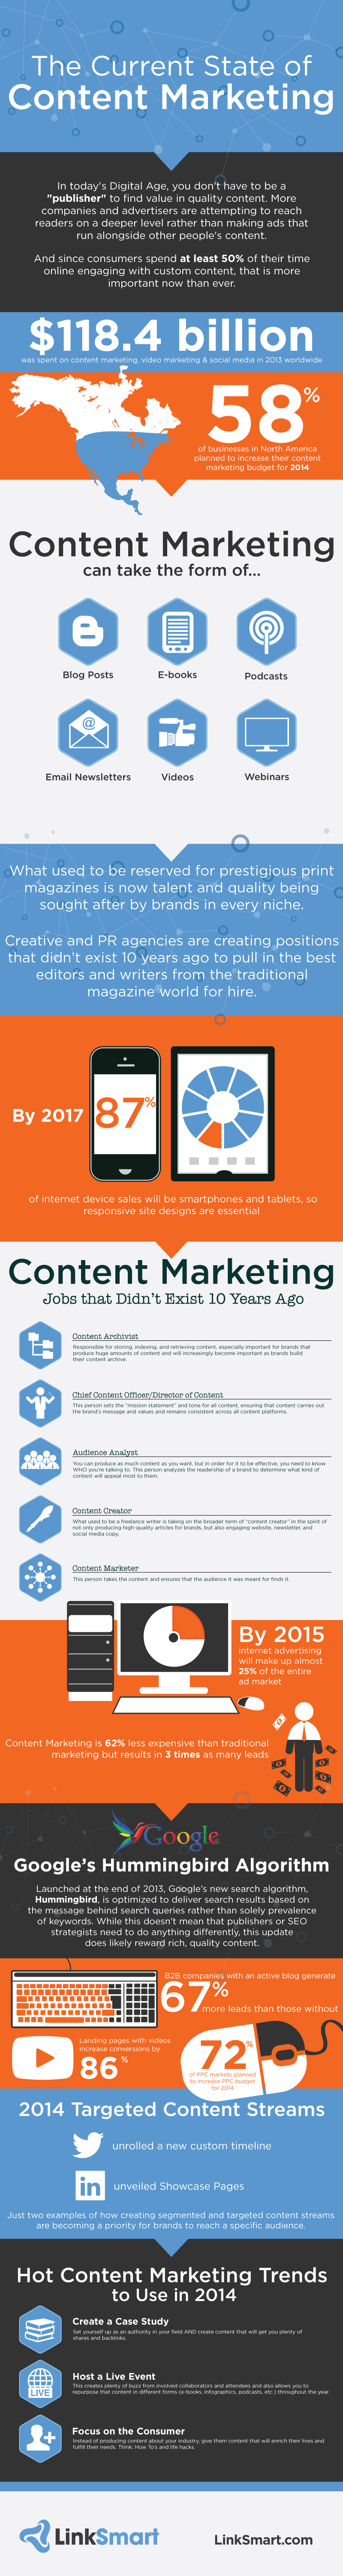 The Current State of Content Marketing